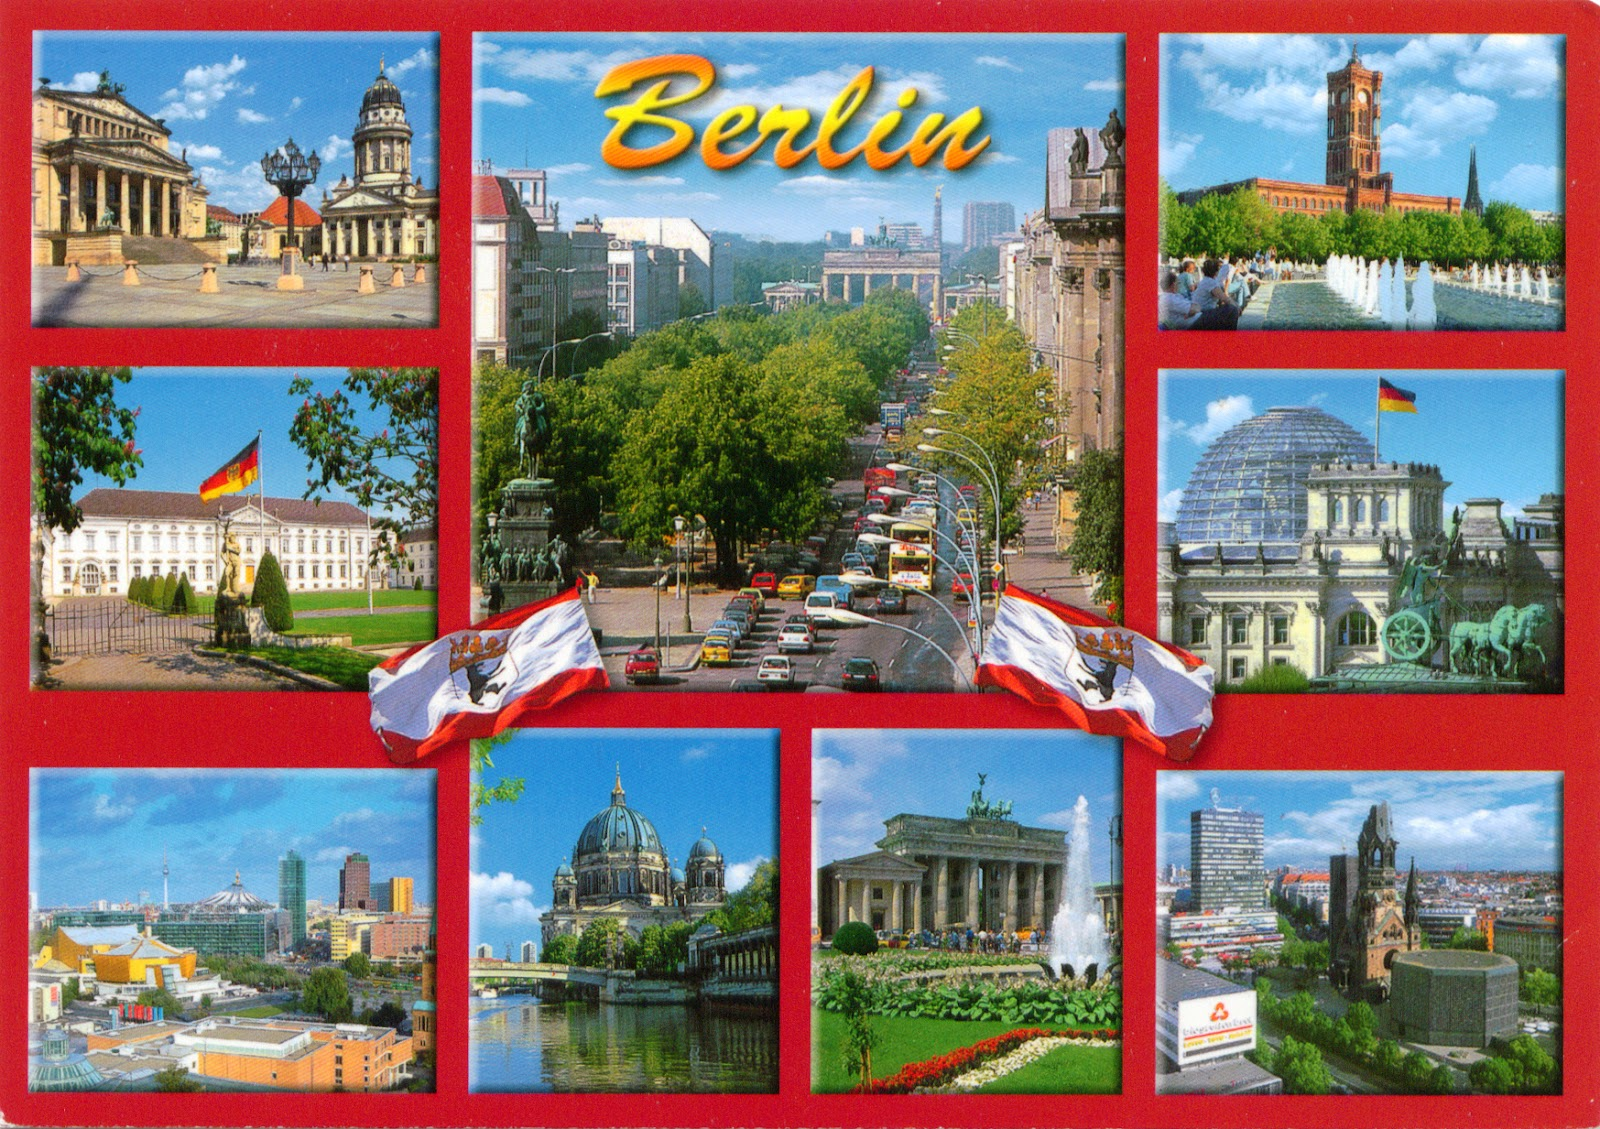 world come to my home 0428 2488 germany berlin images of berlin. Black Bedroom Furniture Sets. Home Design Ideas